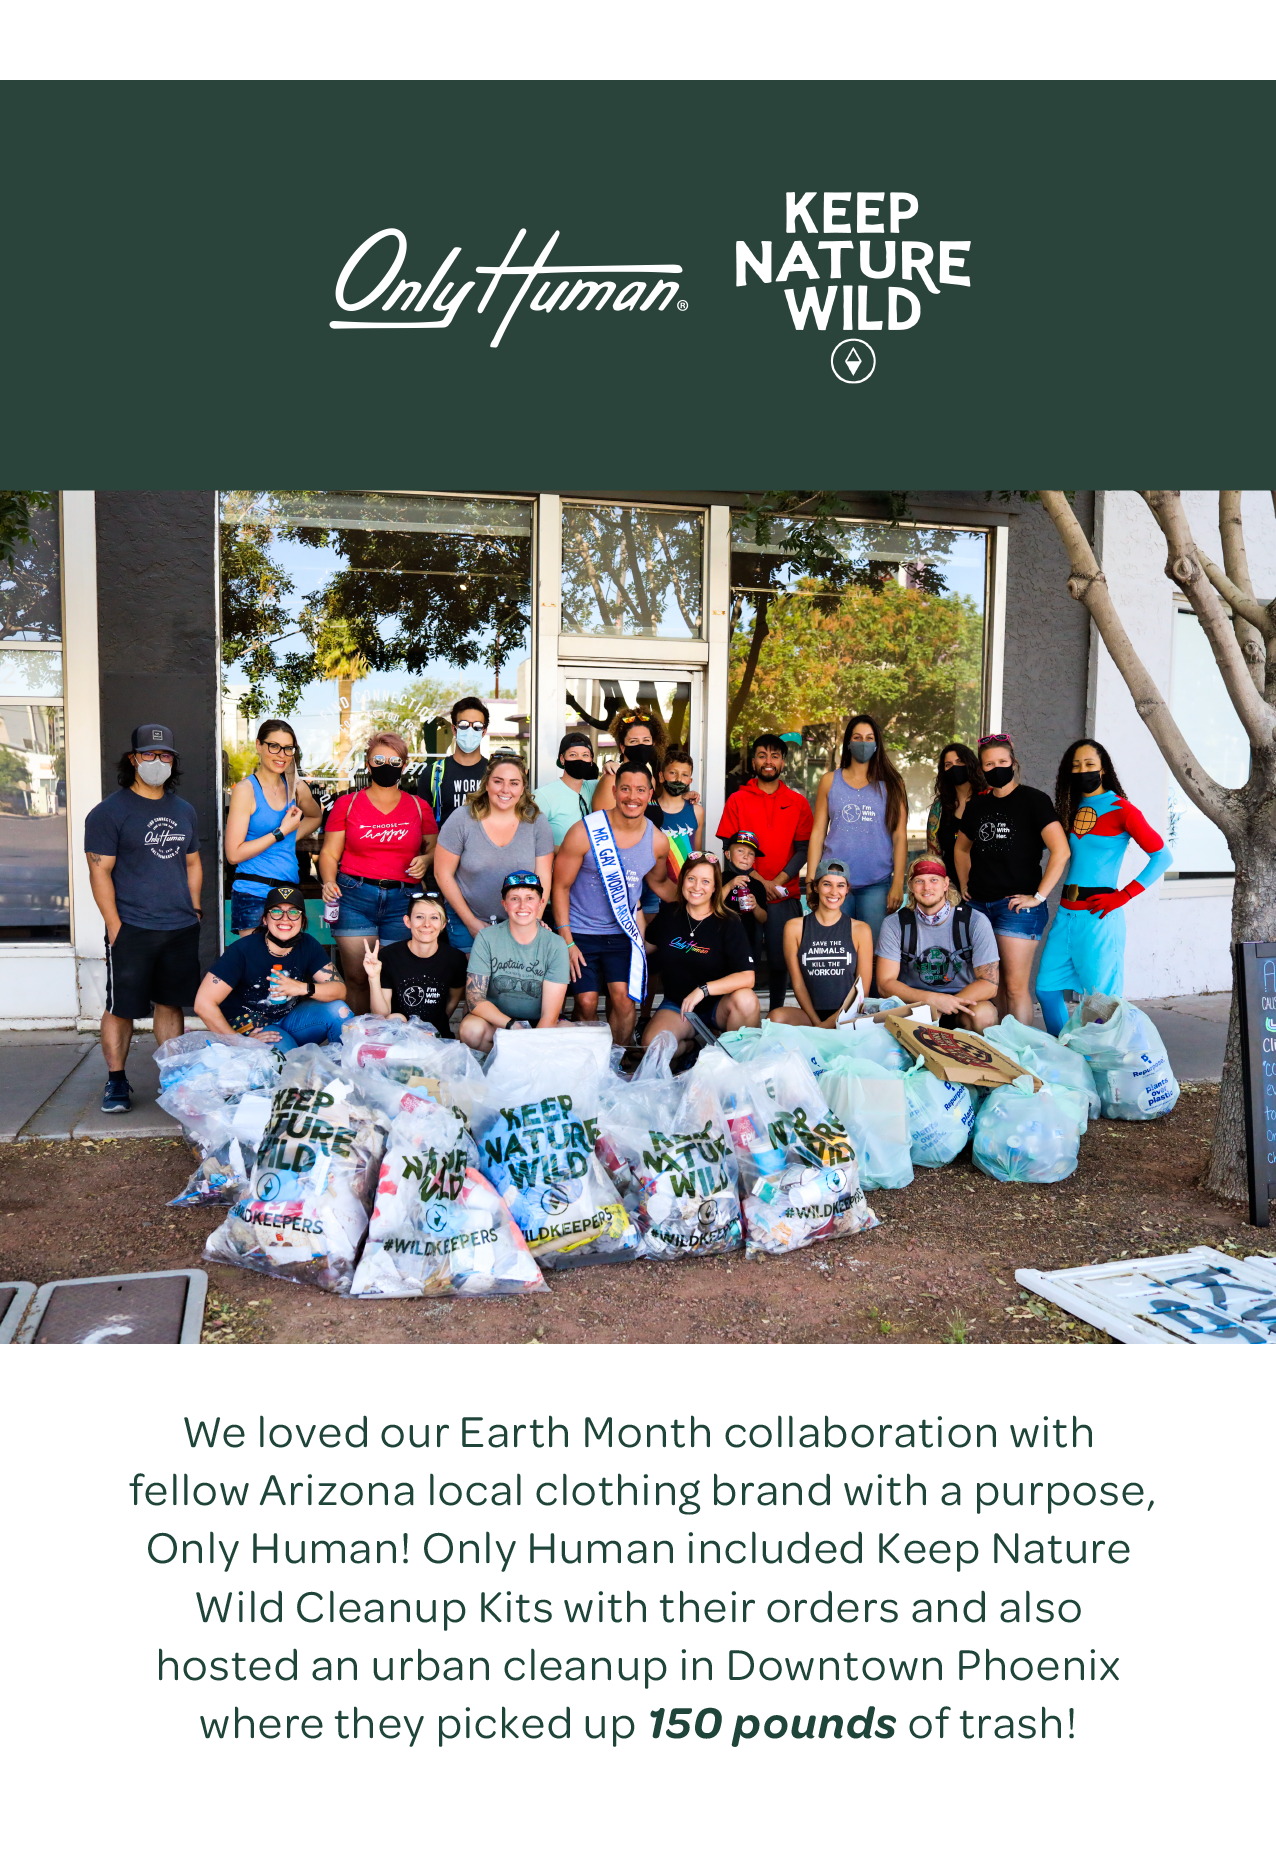 Only Human and Keep Nature Wild — We loved our Earth Month collaboration with fellow Arizona local clothing brand with a purpose, Only Human! Only Human included Keep Nature Wild Cleanup Kits with their orders and also hosted an urban cleanup in Downtown Phoenix where they picked up 150 pounds of trash!